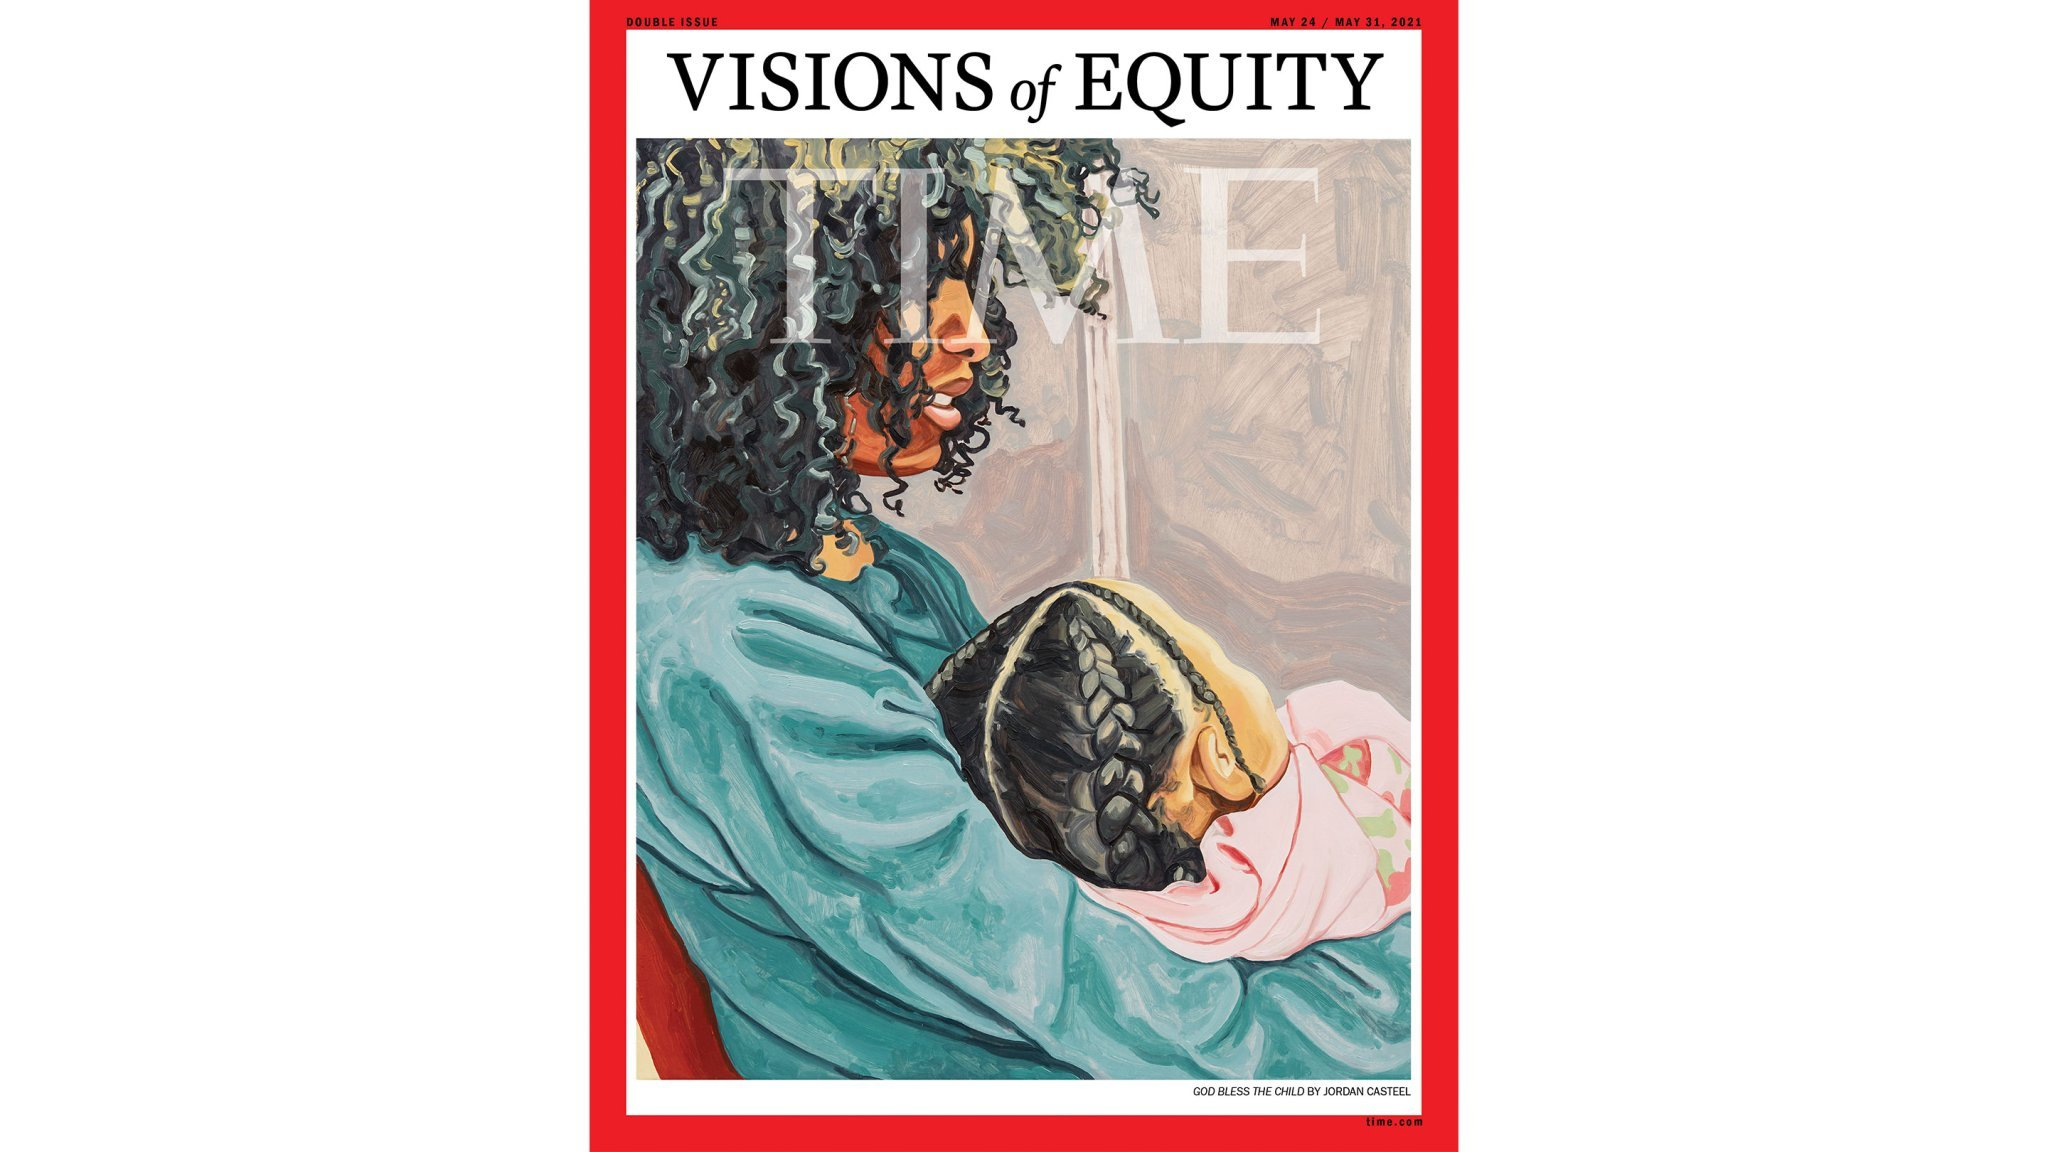 Visions of Equity